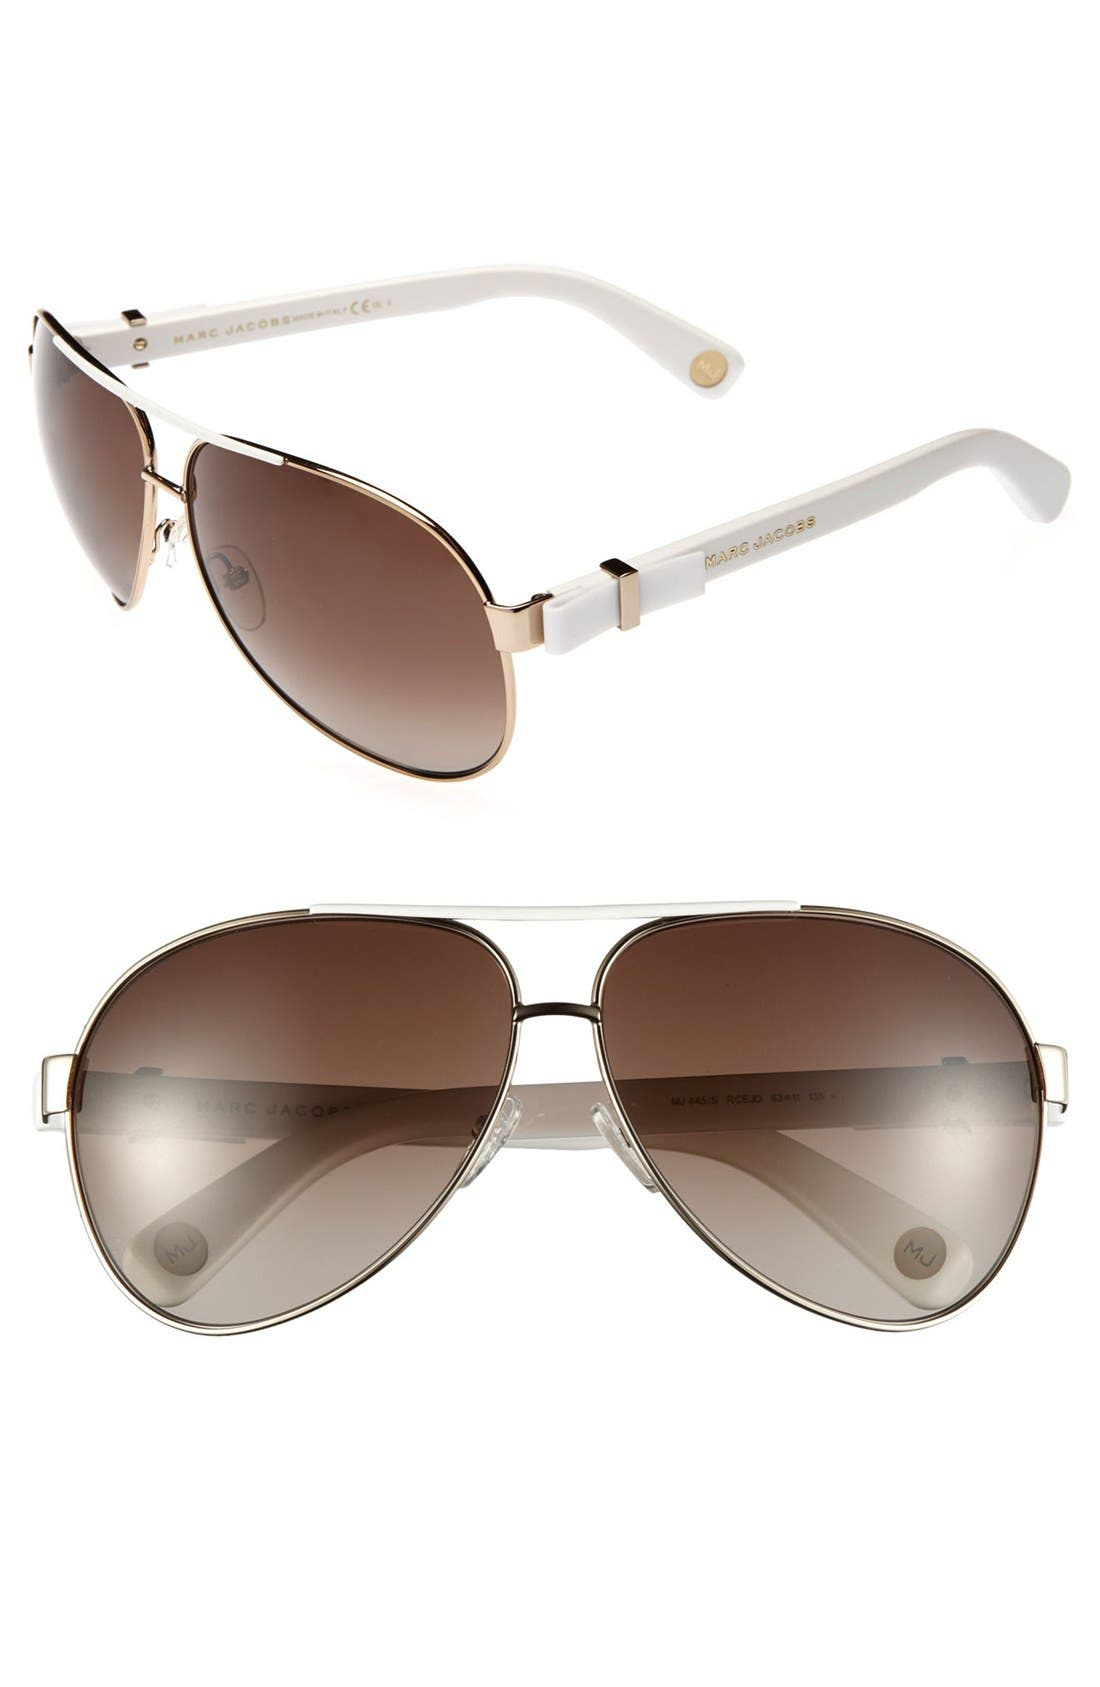 Alternate Image 1 Selected - MARC JACOBS 63mm Metal Aviator Sunglasses